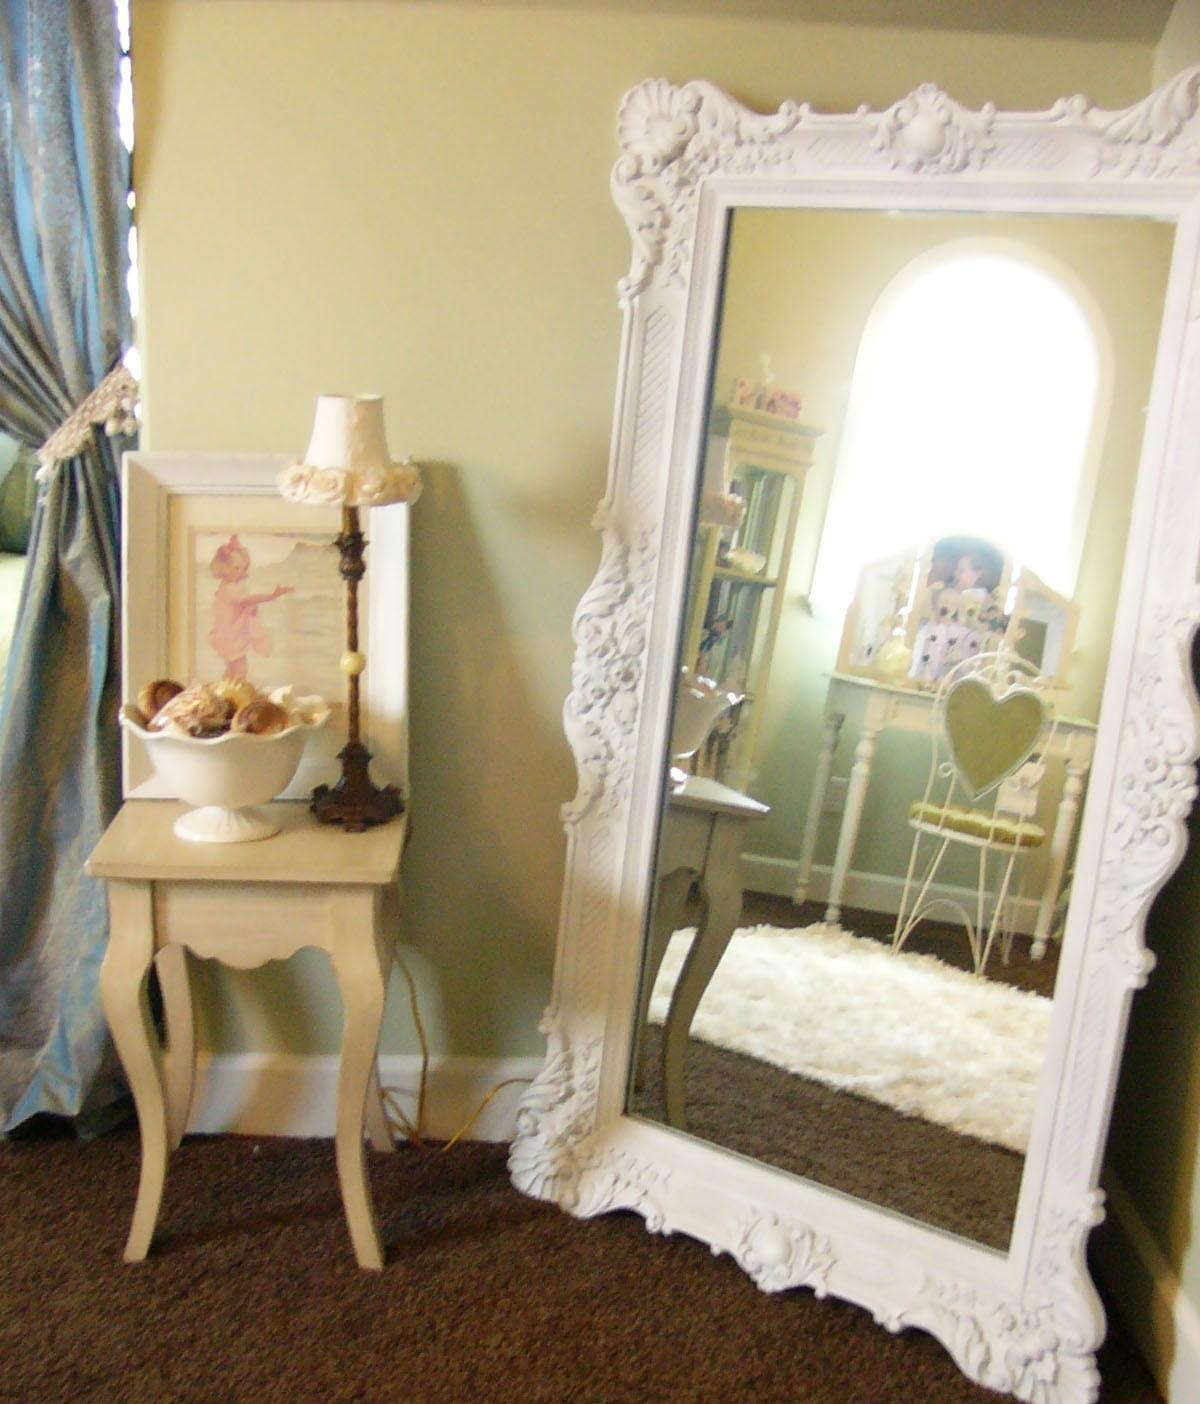 Shabby Chic Mirrors Images – Reverse Search Within Chic Mirrors (View 14 of 20)